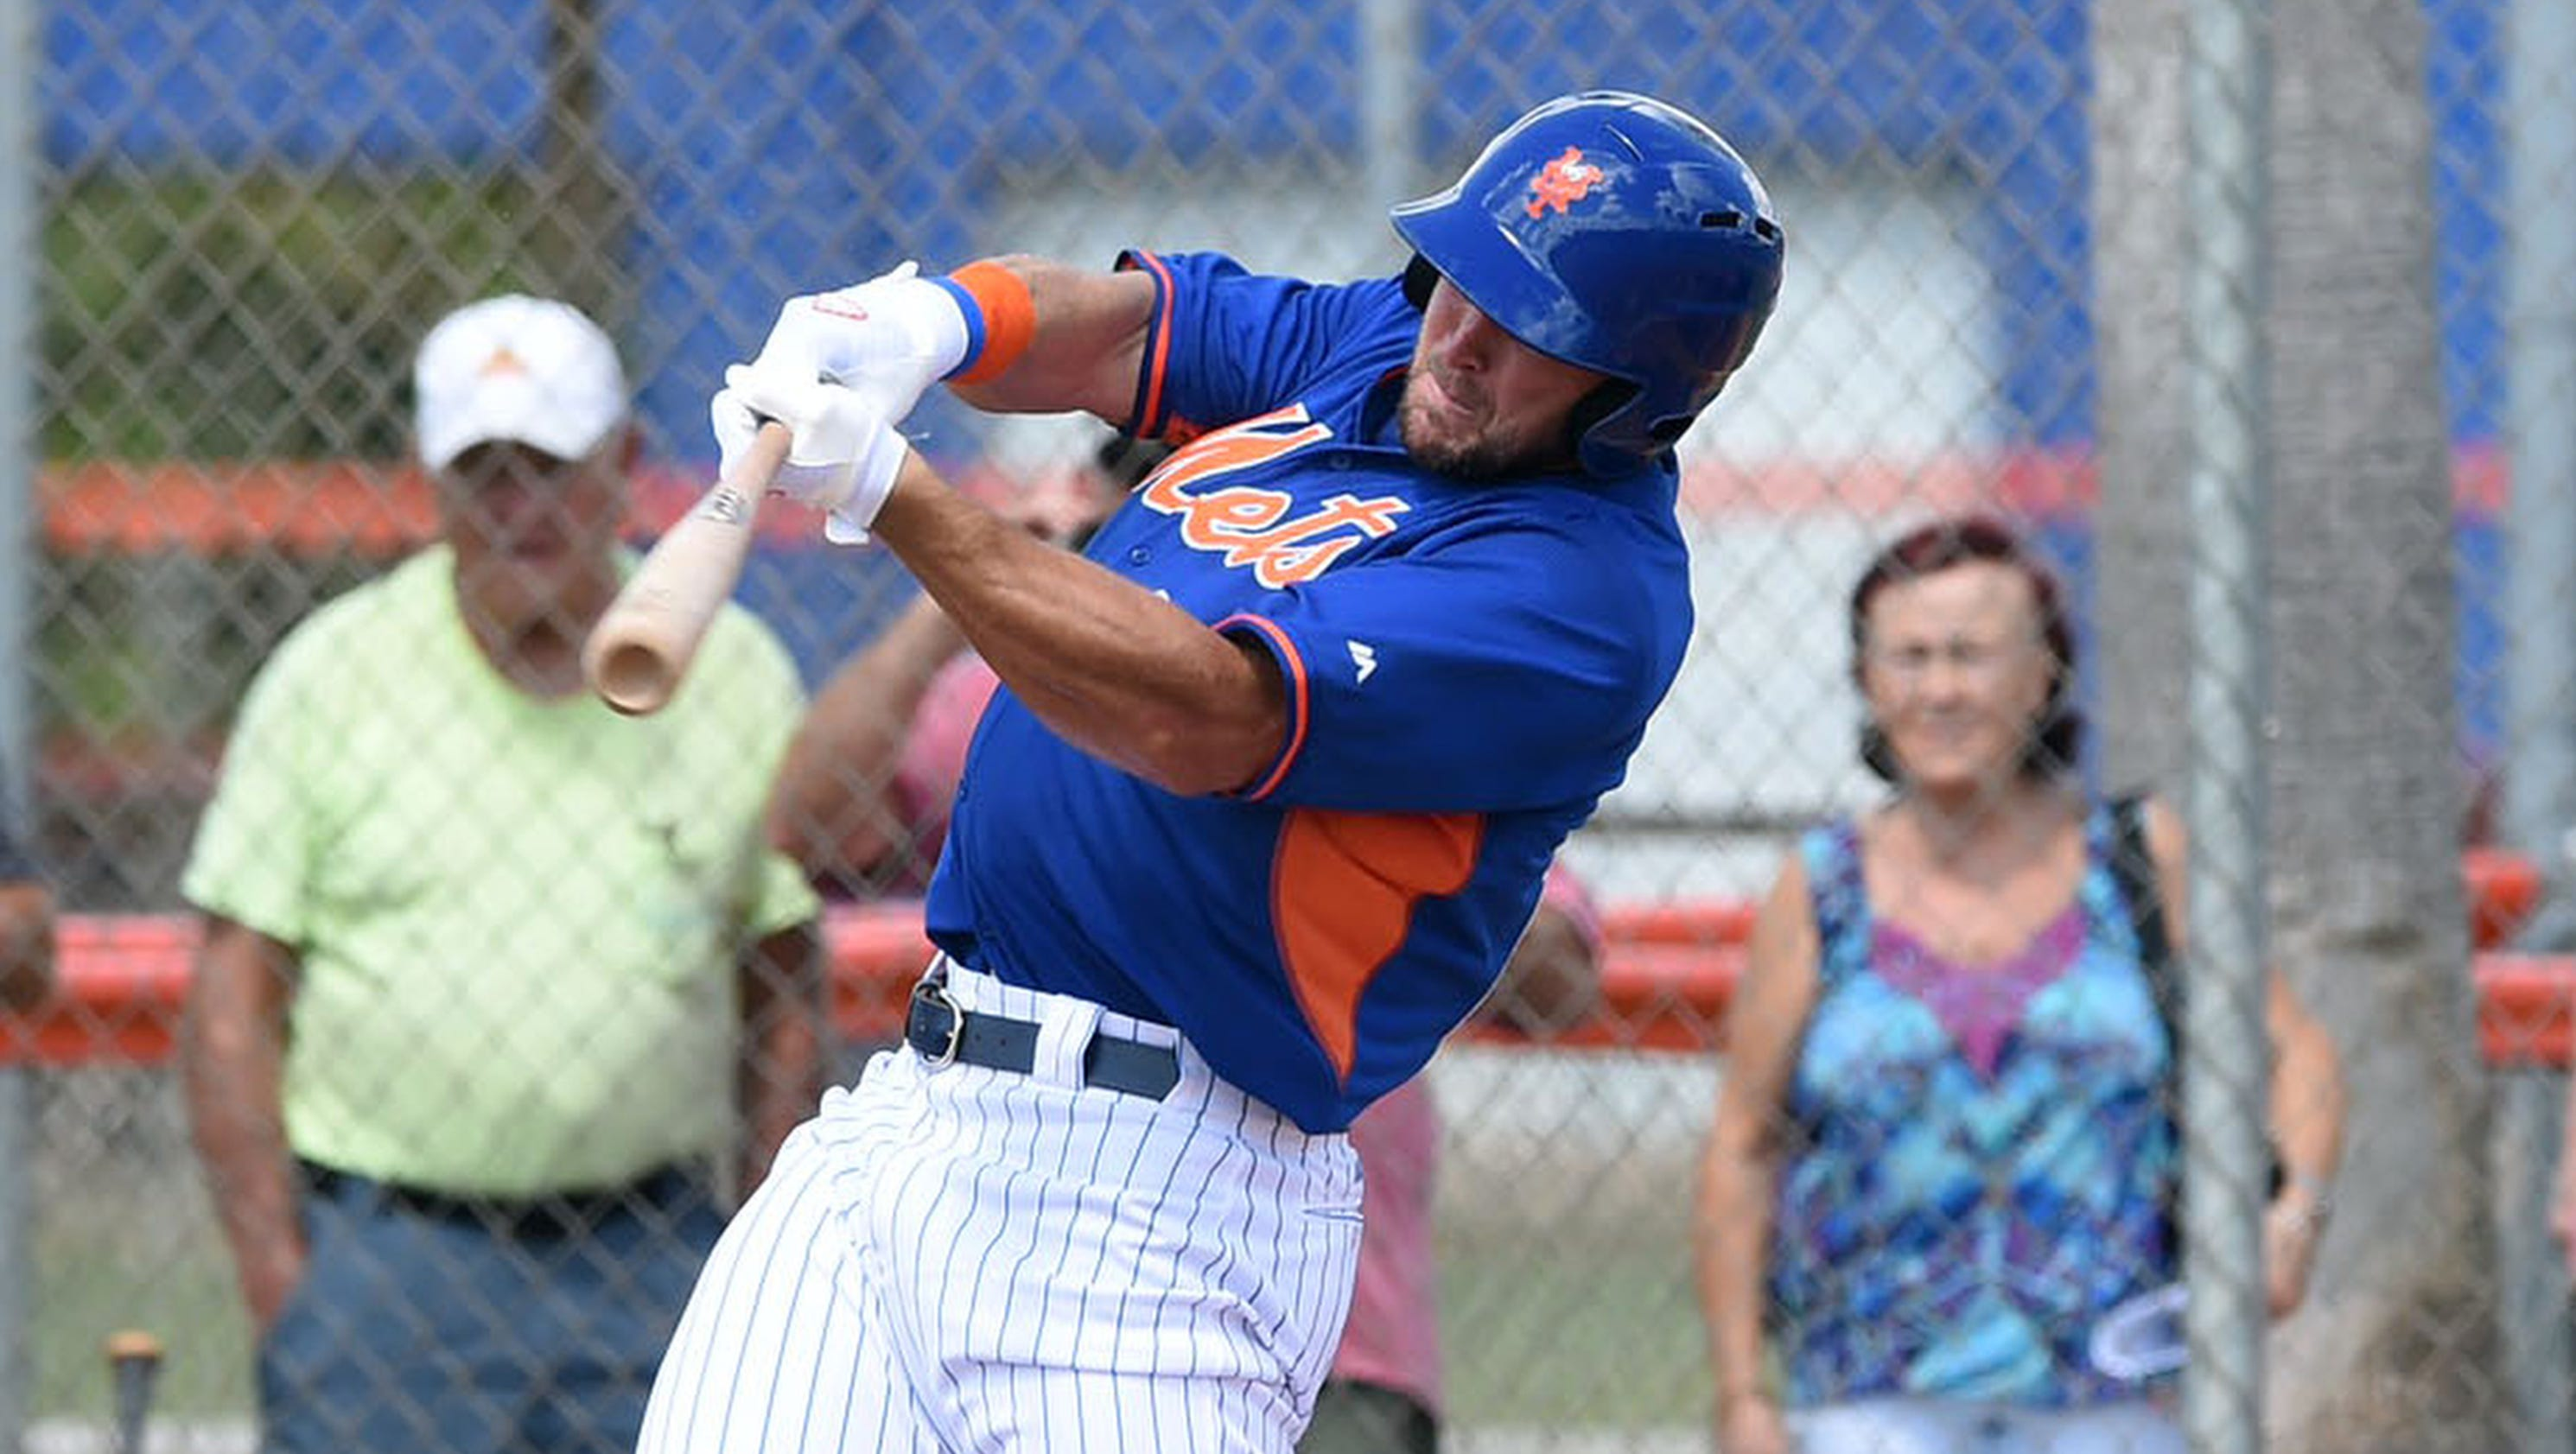 Tim Tebow Home Run Today Video